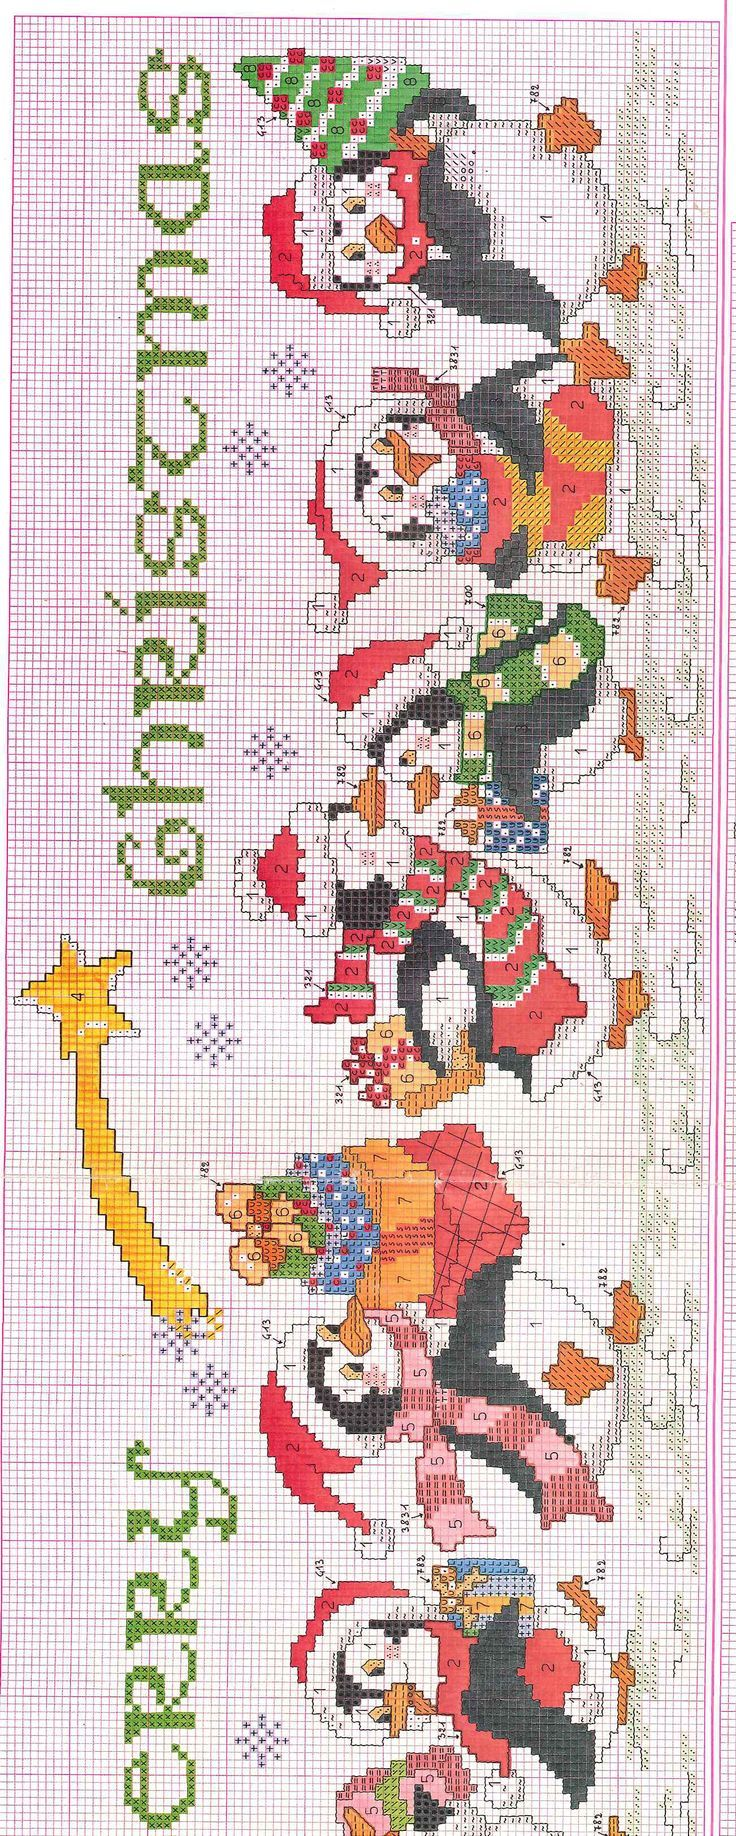 Cross-stitch Merry Christmas Penguins, part 2.. color chart on part 1...   pinned from  http://www.ioricamo.org/lavori-punto-croce/natale